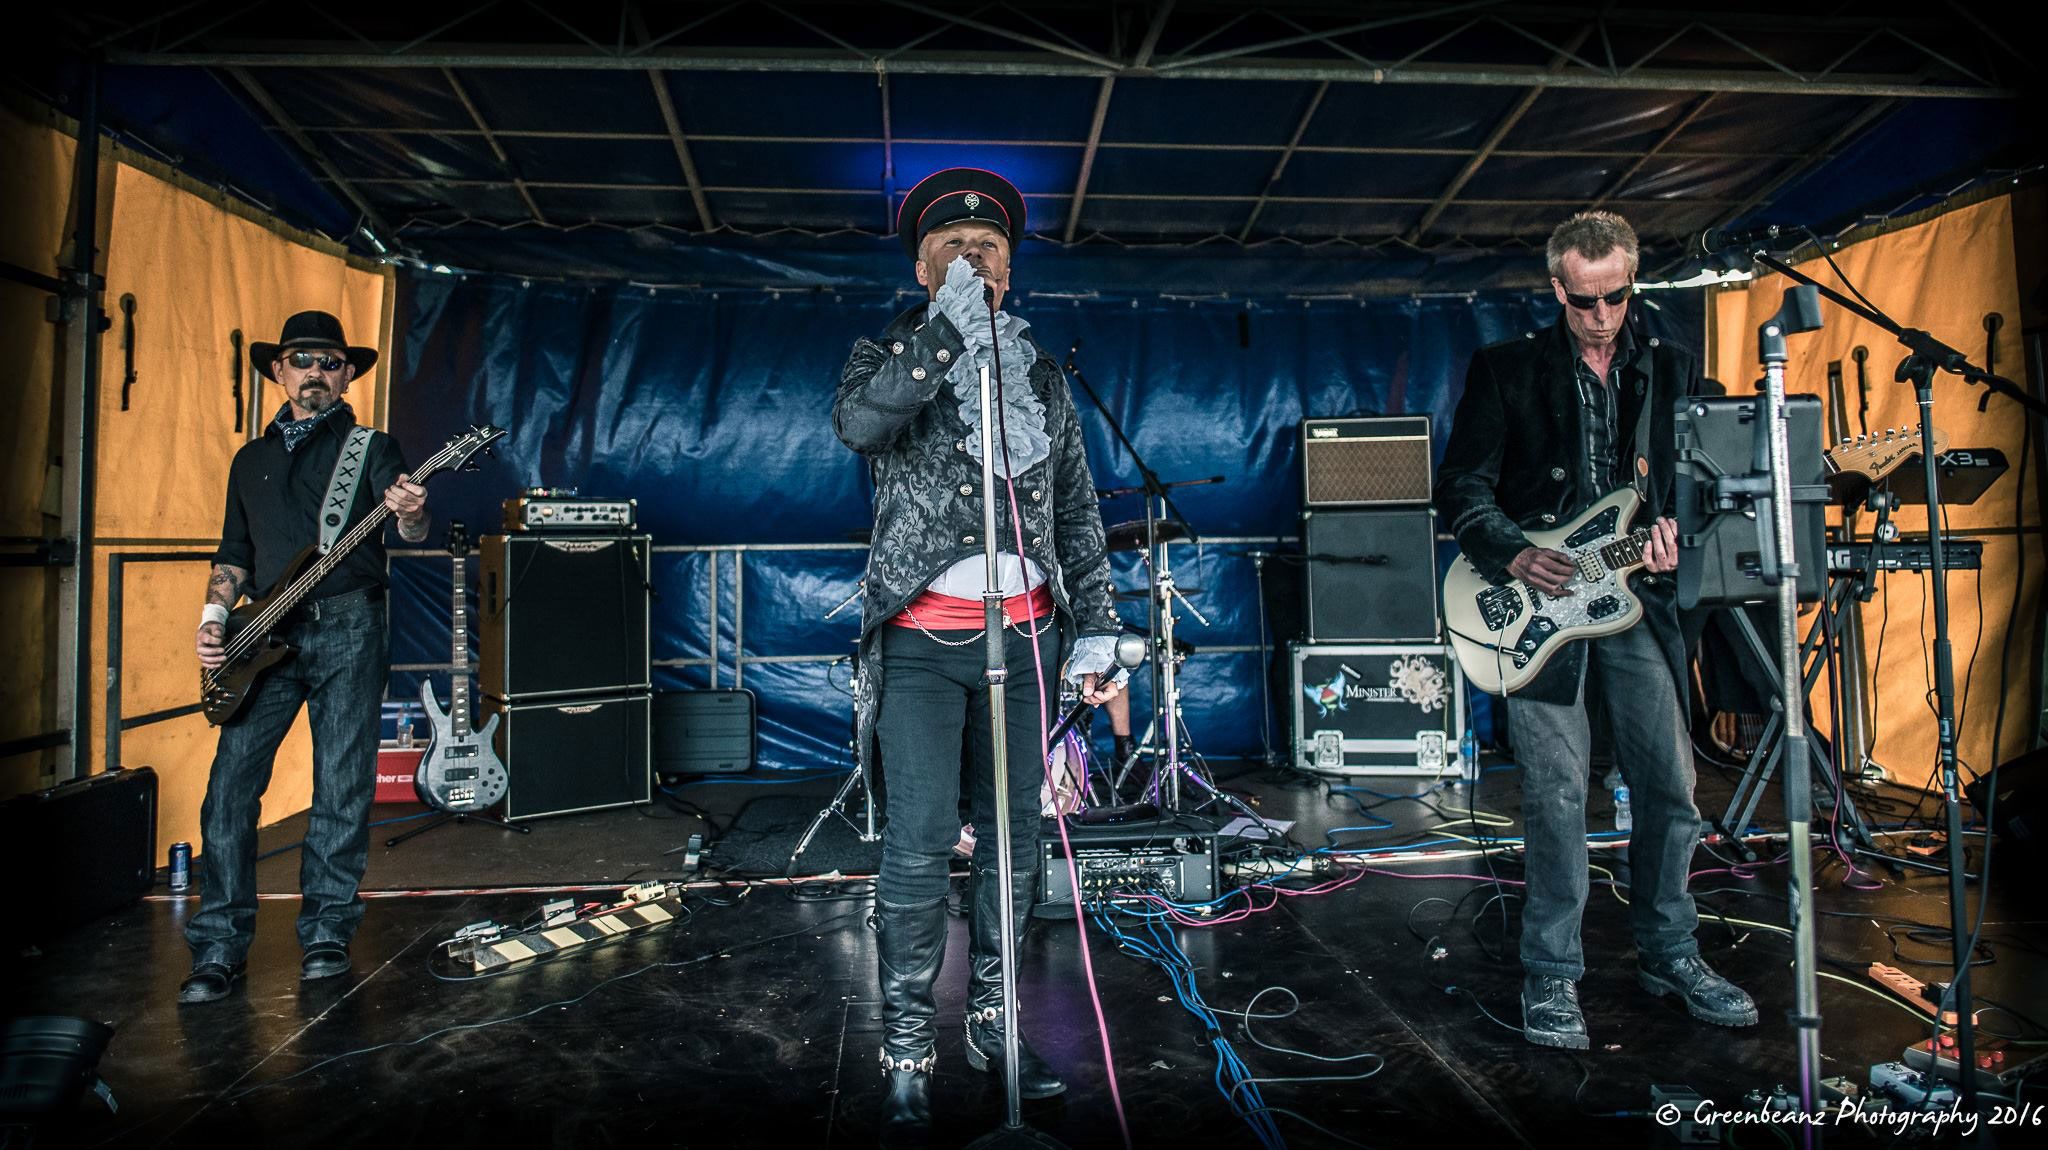 Plymouth Music Photographers Image of Souls of Misfortune the Gothic Rock band at Plymouth Bike Night